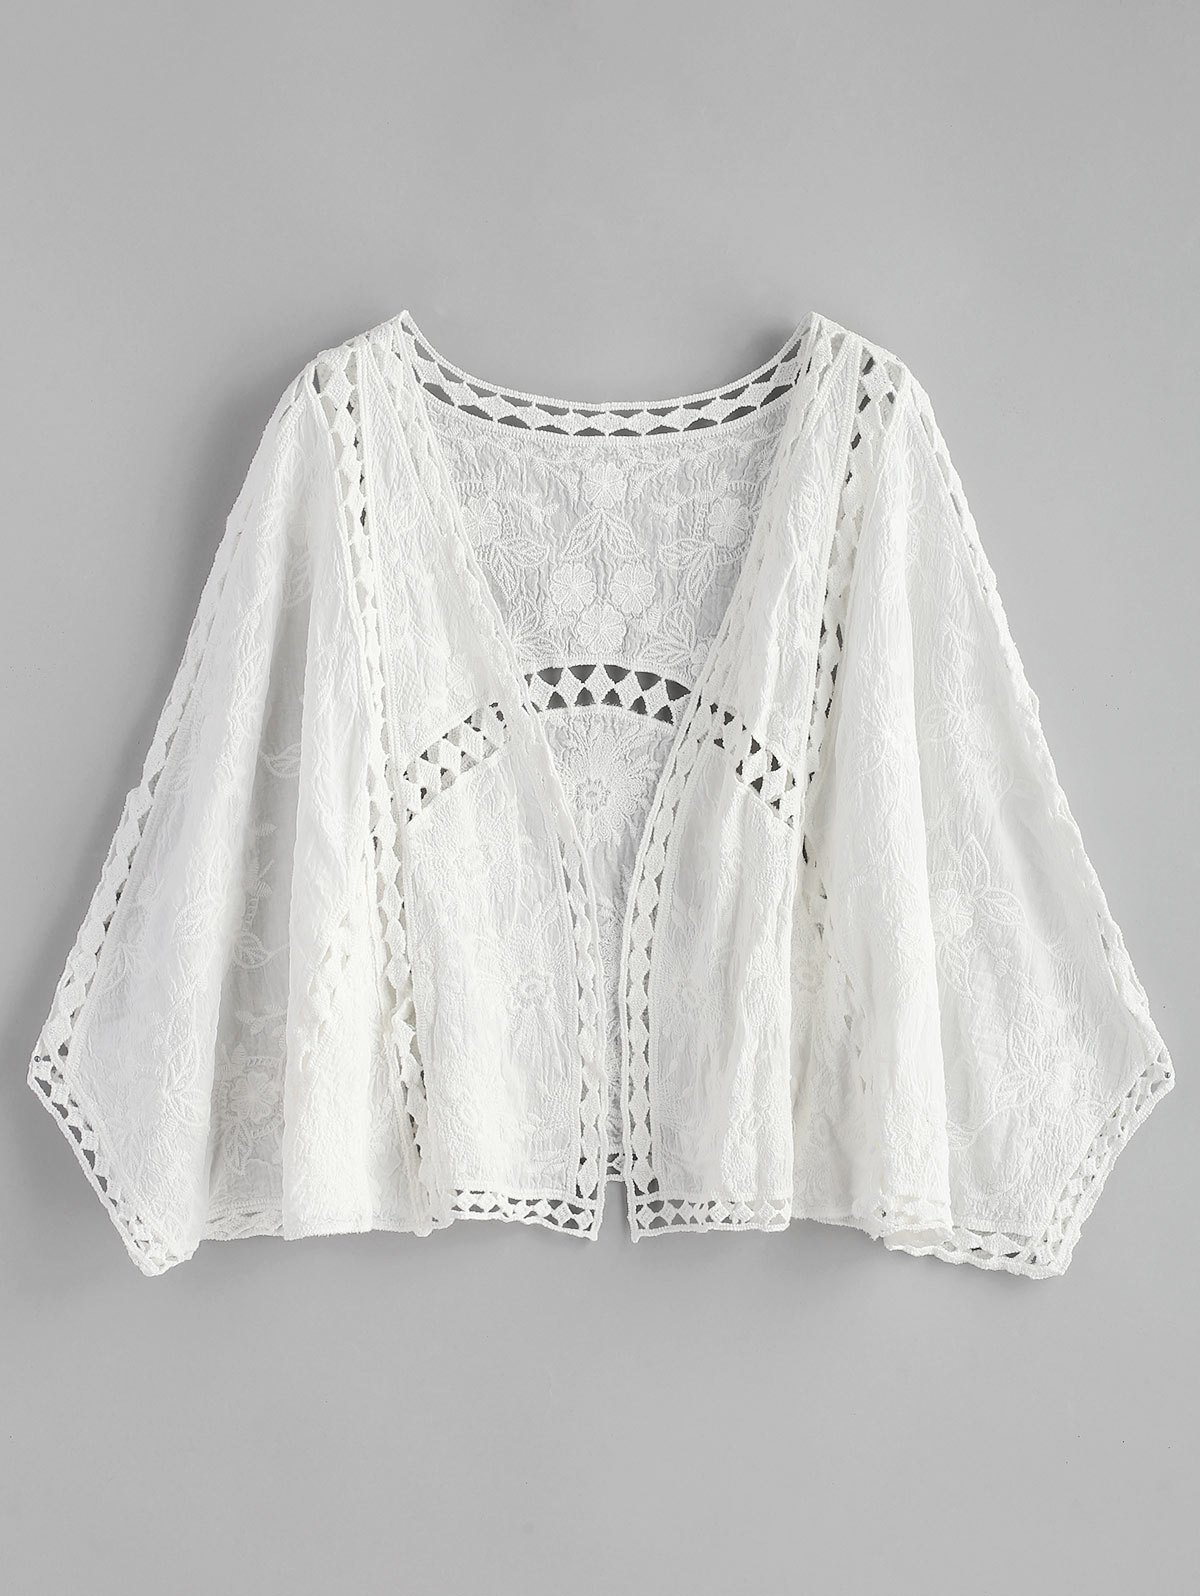 Embroidered Hollow Out Batwing Kimono fringe hem embroidered batwing top